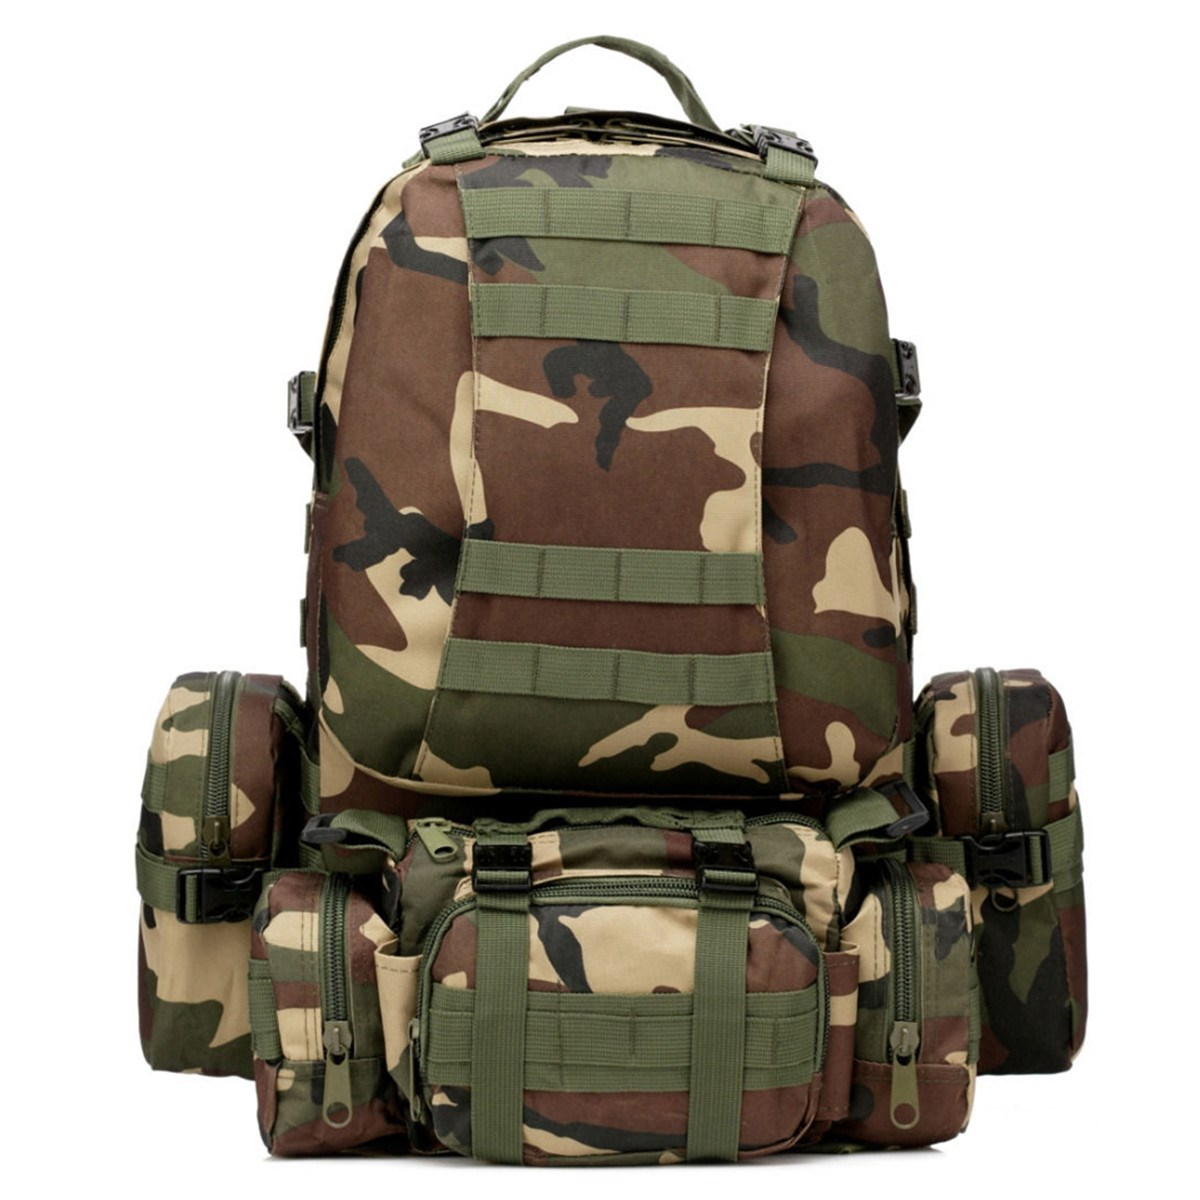 55L 600D nylon Backpack Sport 3D Molle wearproof Military Tactical Backpack Camping hiking Rucksack mountaineering climbing Bag no name sport bullet l 35mm d 27mm 15гр